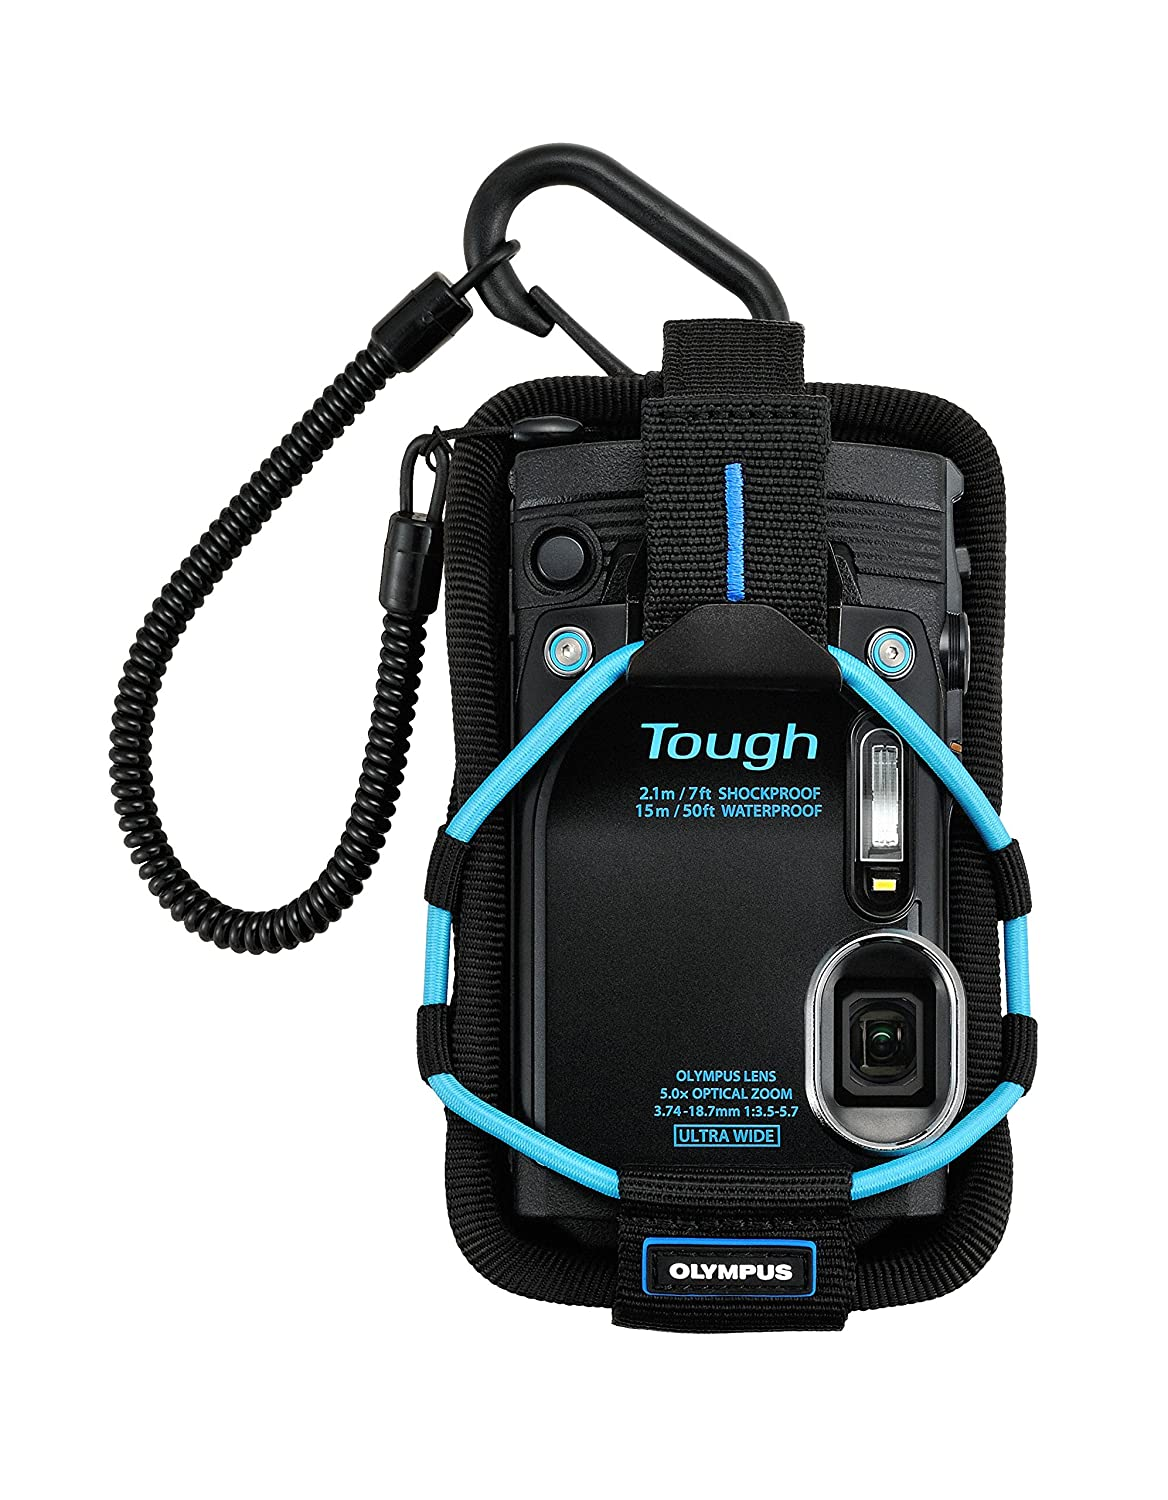 Olympus Tough Sports Holder CSCH-123 (Light Blue) for the TG-1/2/3/4/5 and TG-6 Cameras